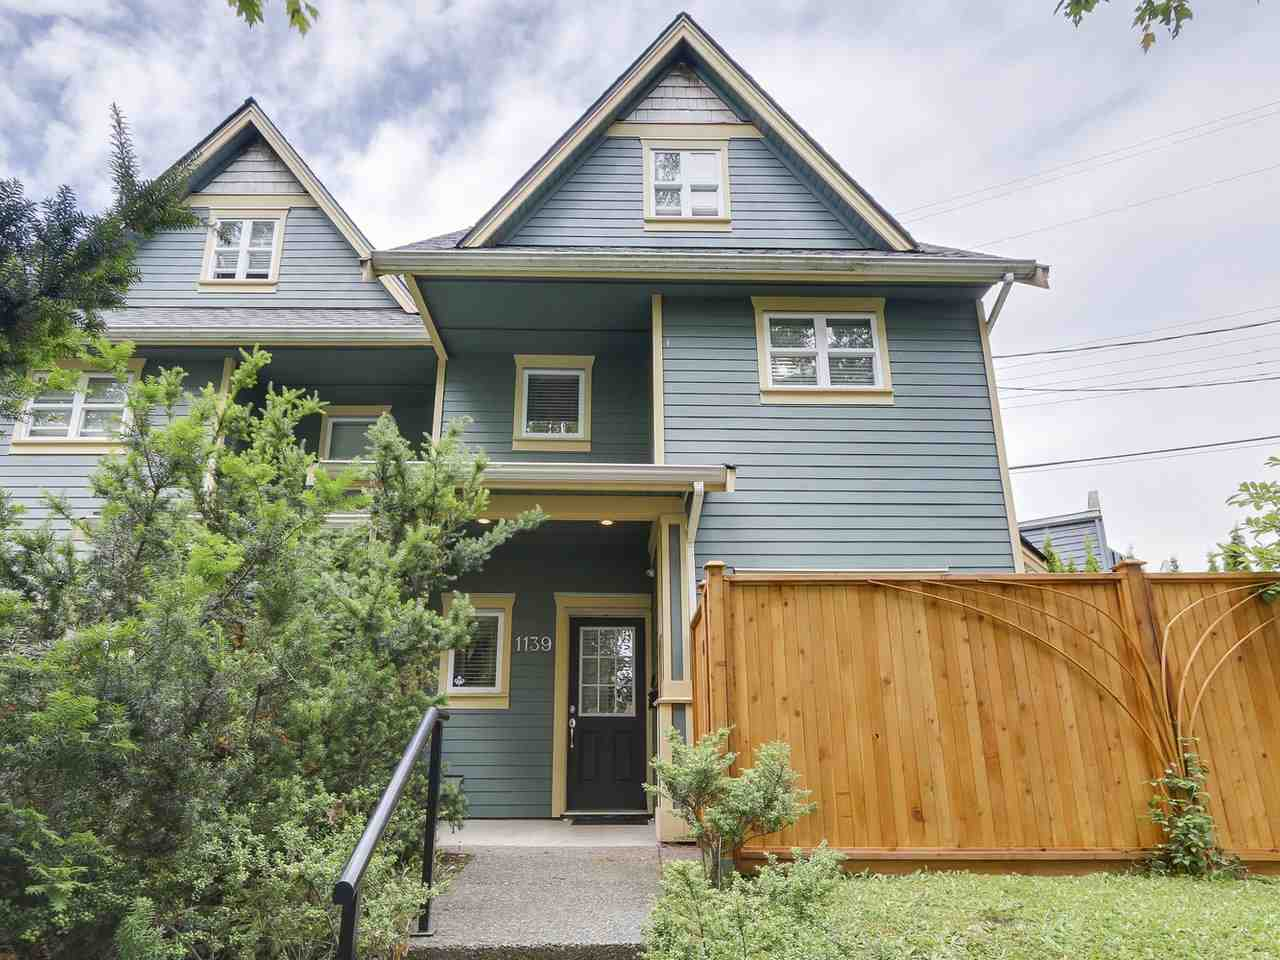 Main Photo: 1139 E 21ST Avenue in Vancouver: Knight House 1/2 Duplex for sale (Vancouver East)  : MLS® # R2180419